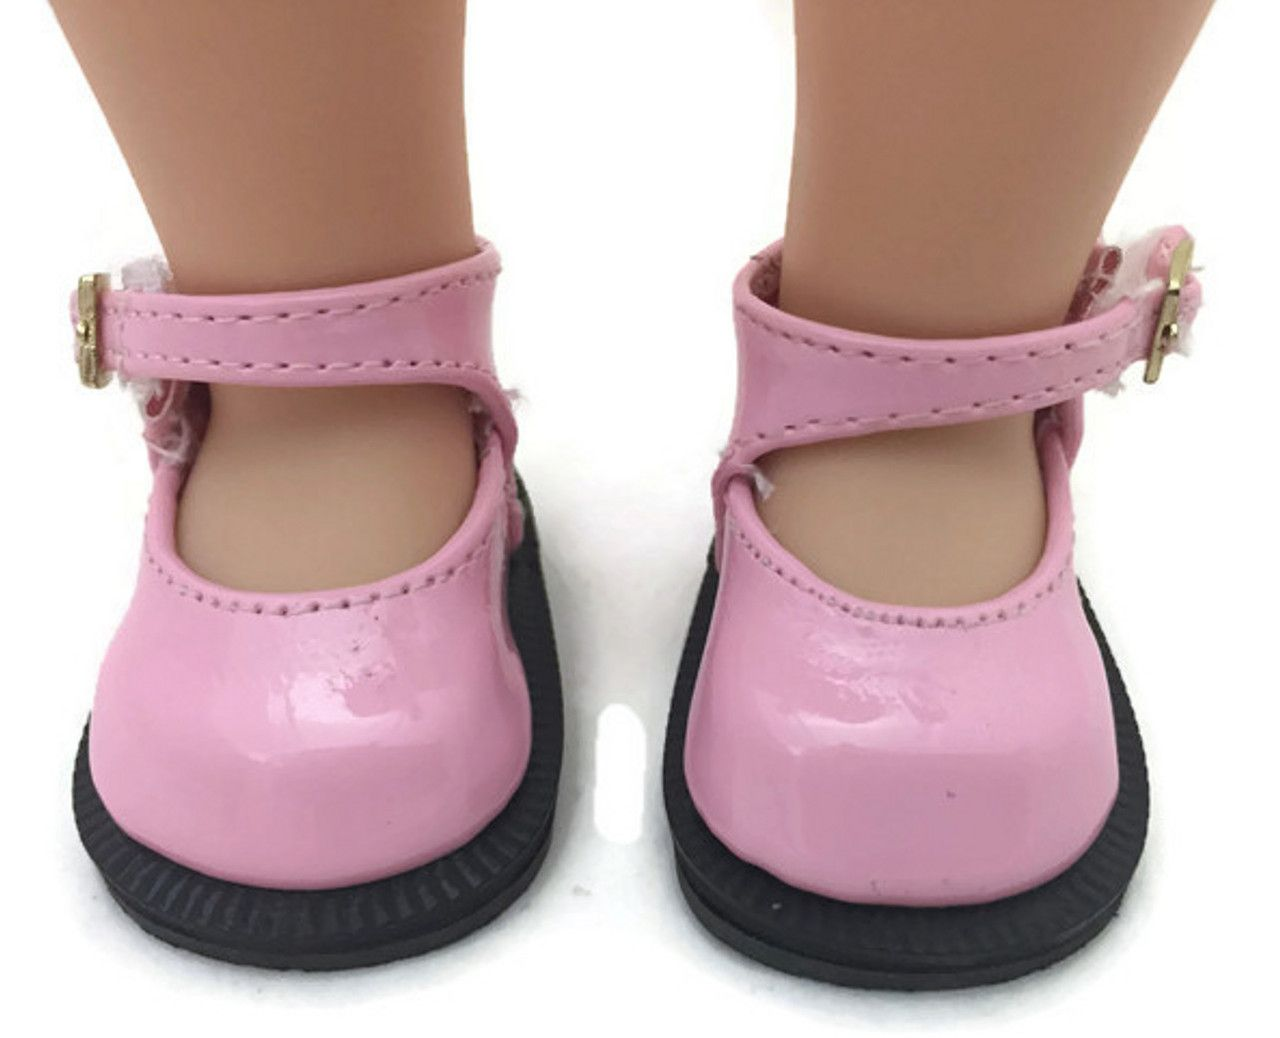 dee8470b40cb Mary Janes-Pink for Wellie Wishers Dolls | Pinterest | Dolls, Girl ...